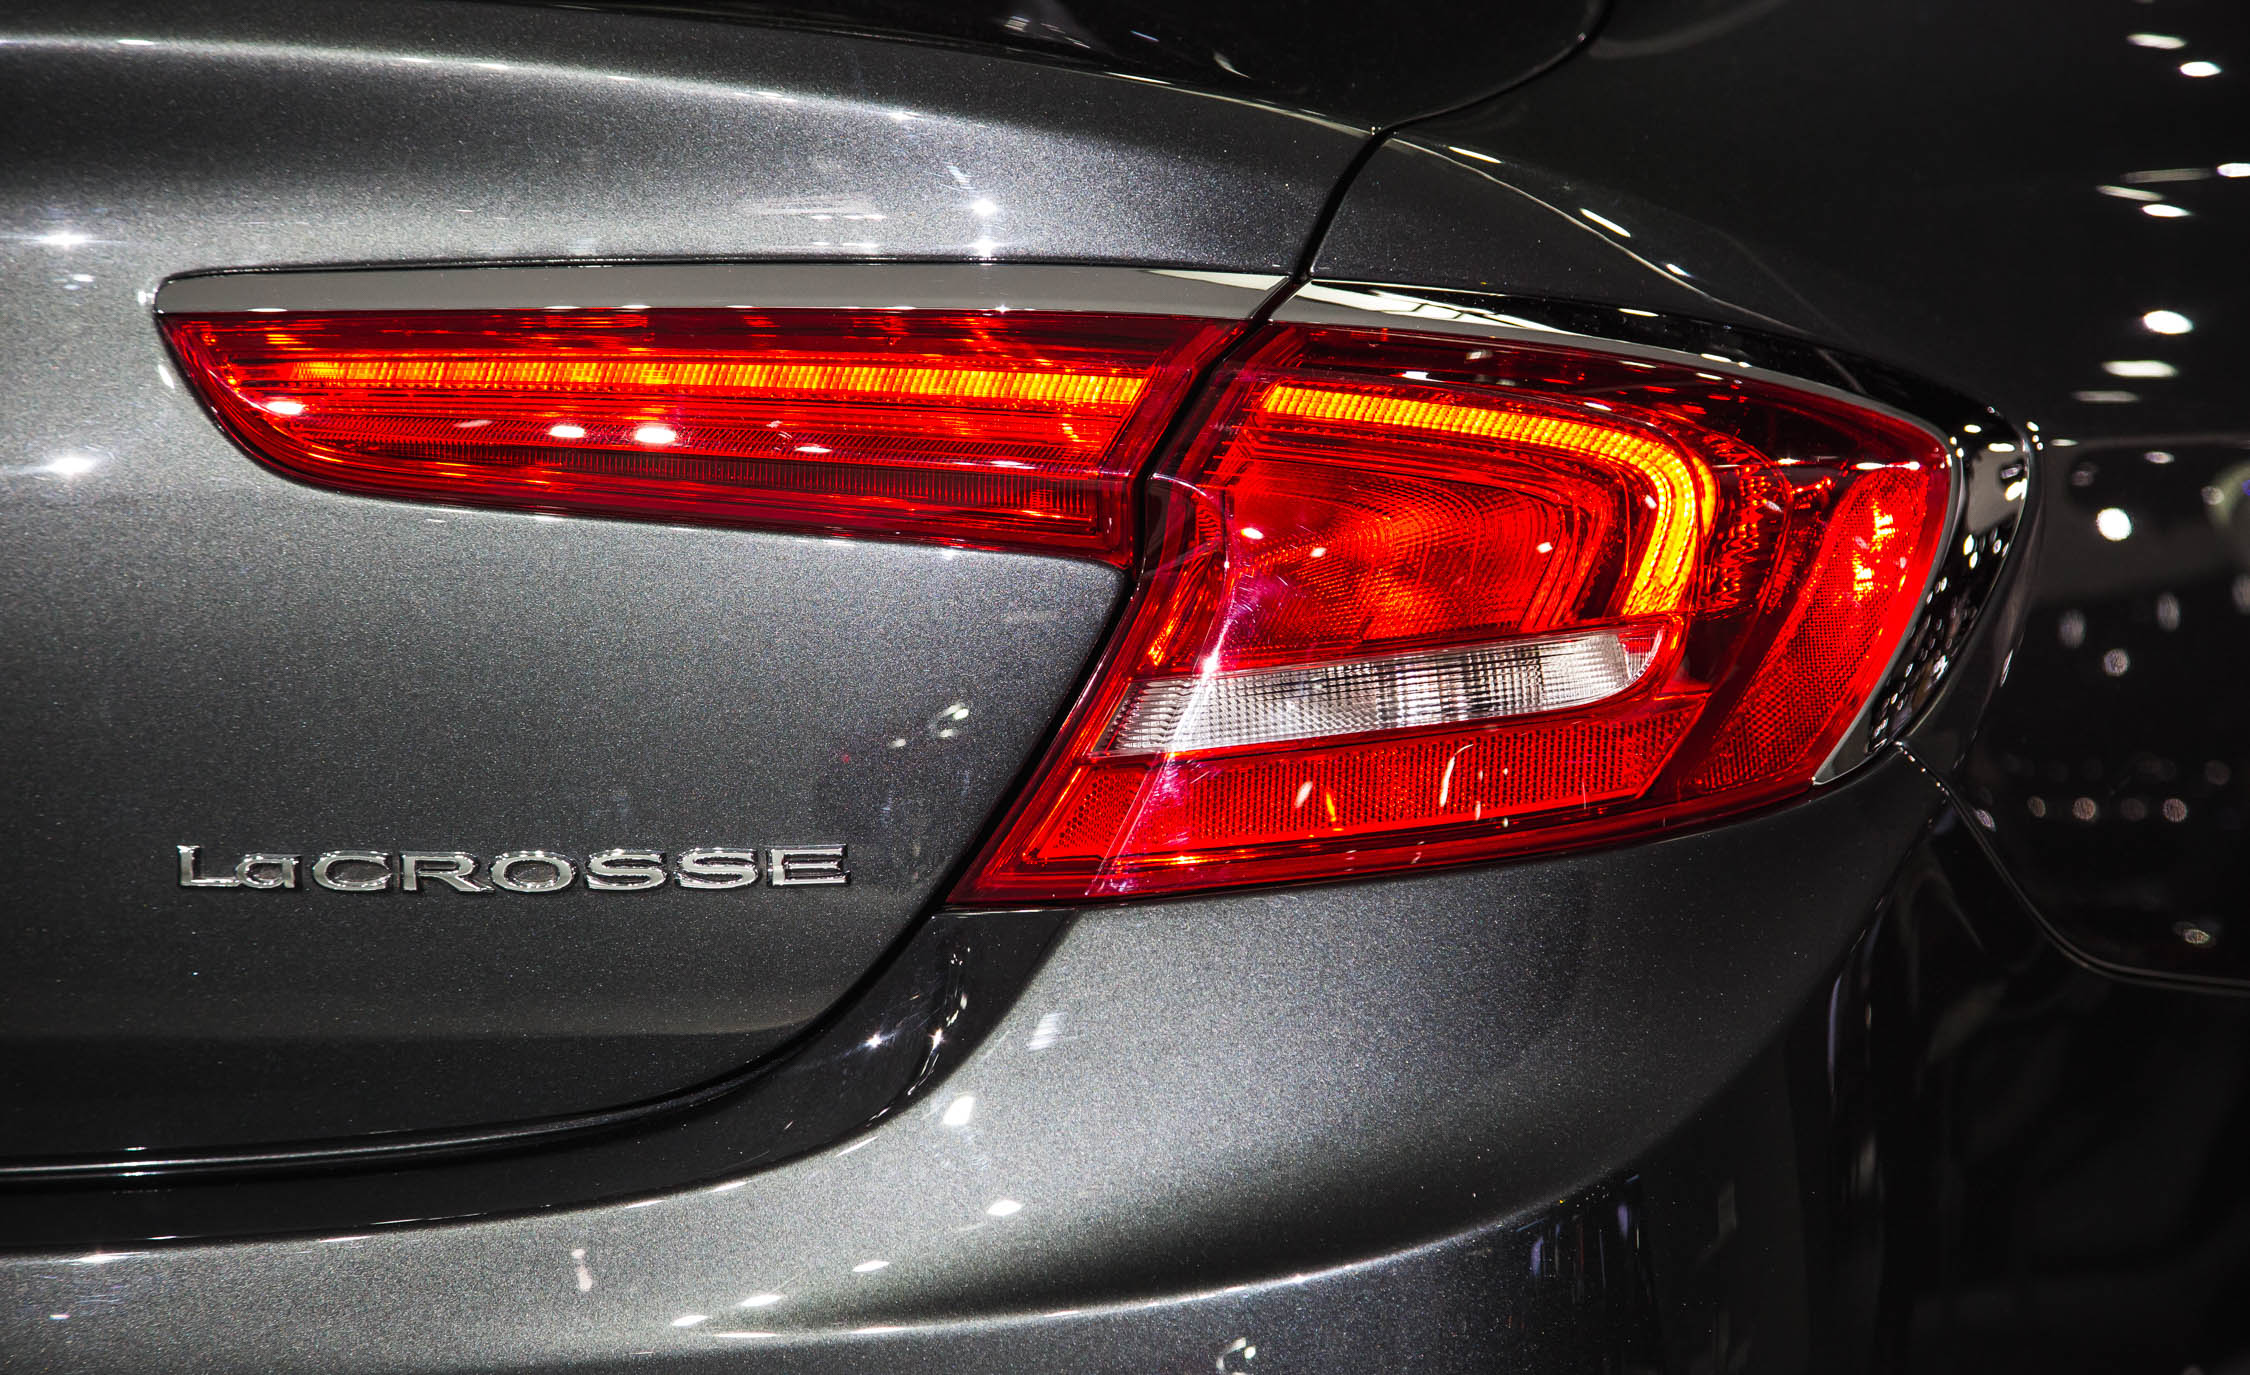 2017 Buick LaCrosse Taillight